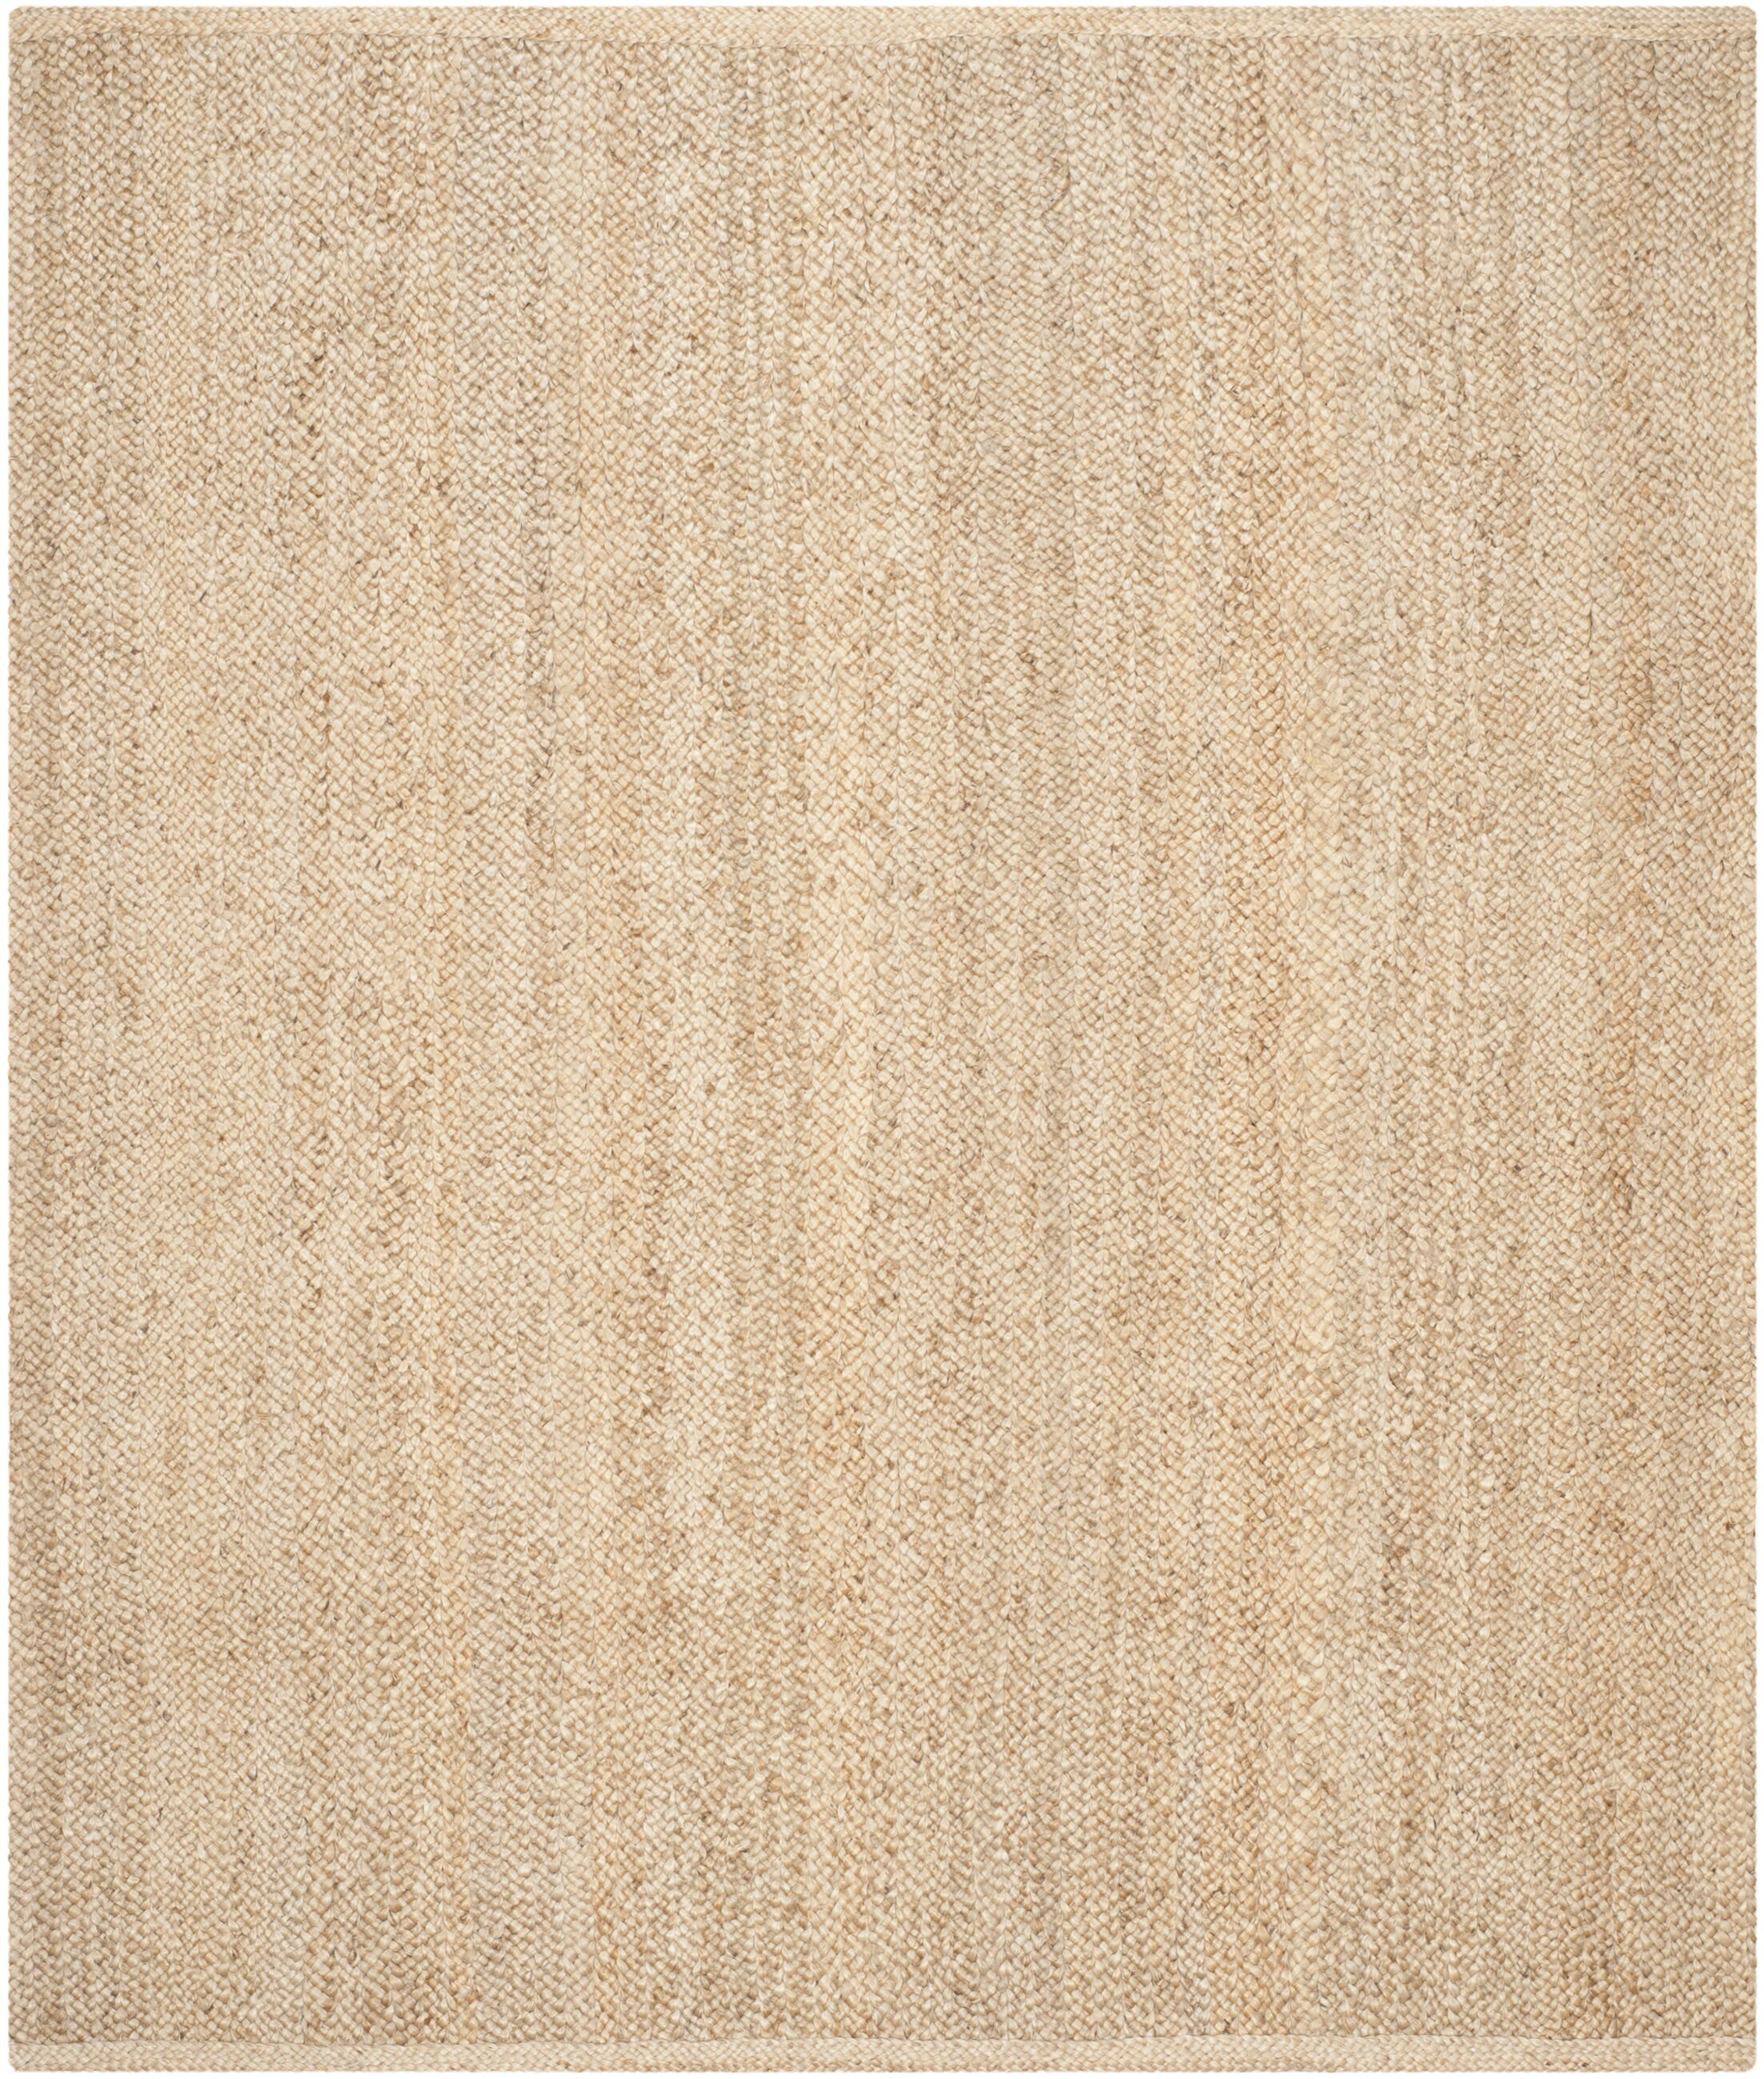 Greene Hand-Woven Natural Area Rug Rug Size: Rectangle 9' x 12'